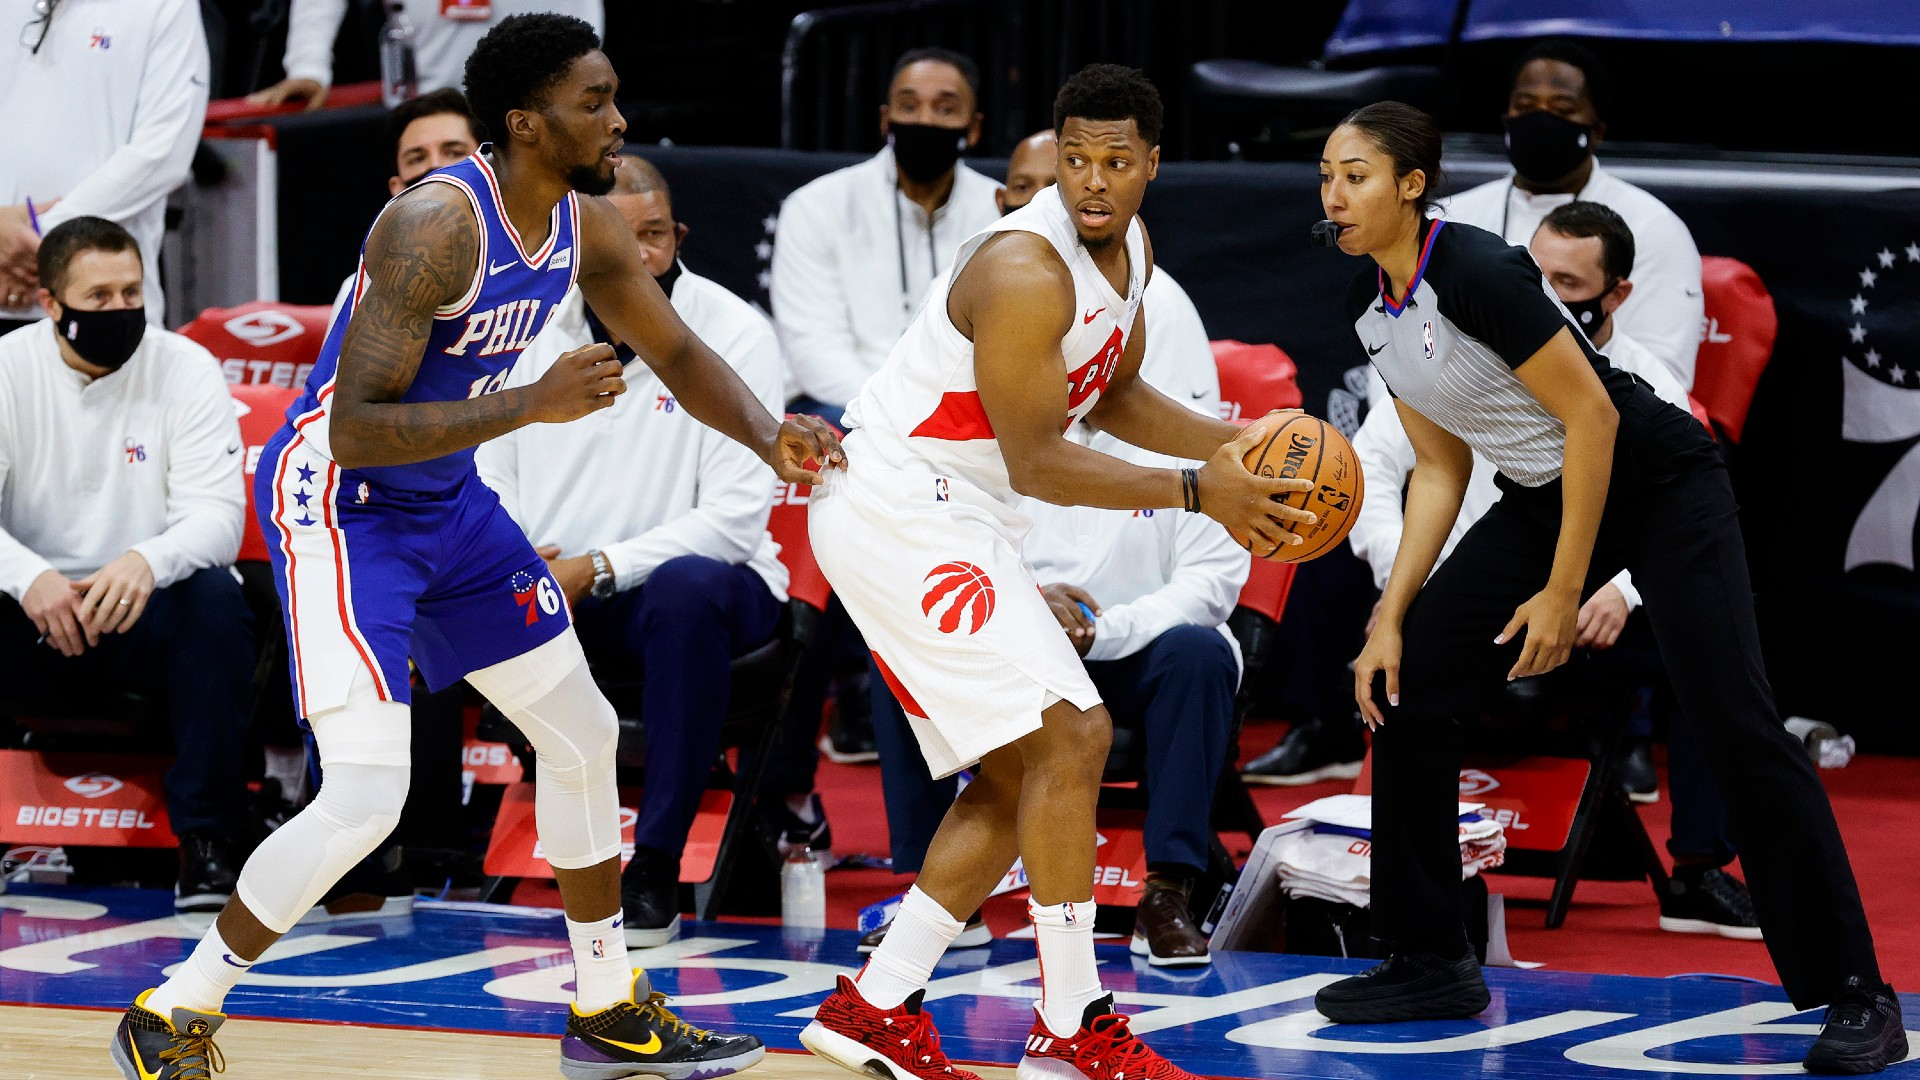 NBA trade rumors: Kyle Lowry prefers 76ers if Raptors move him before deadline